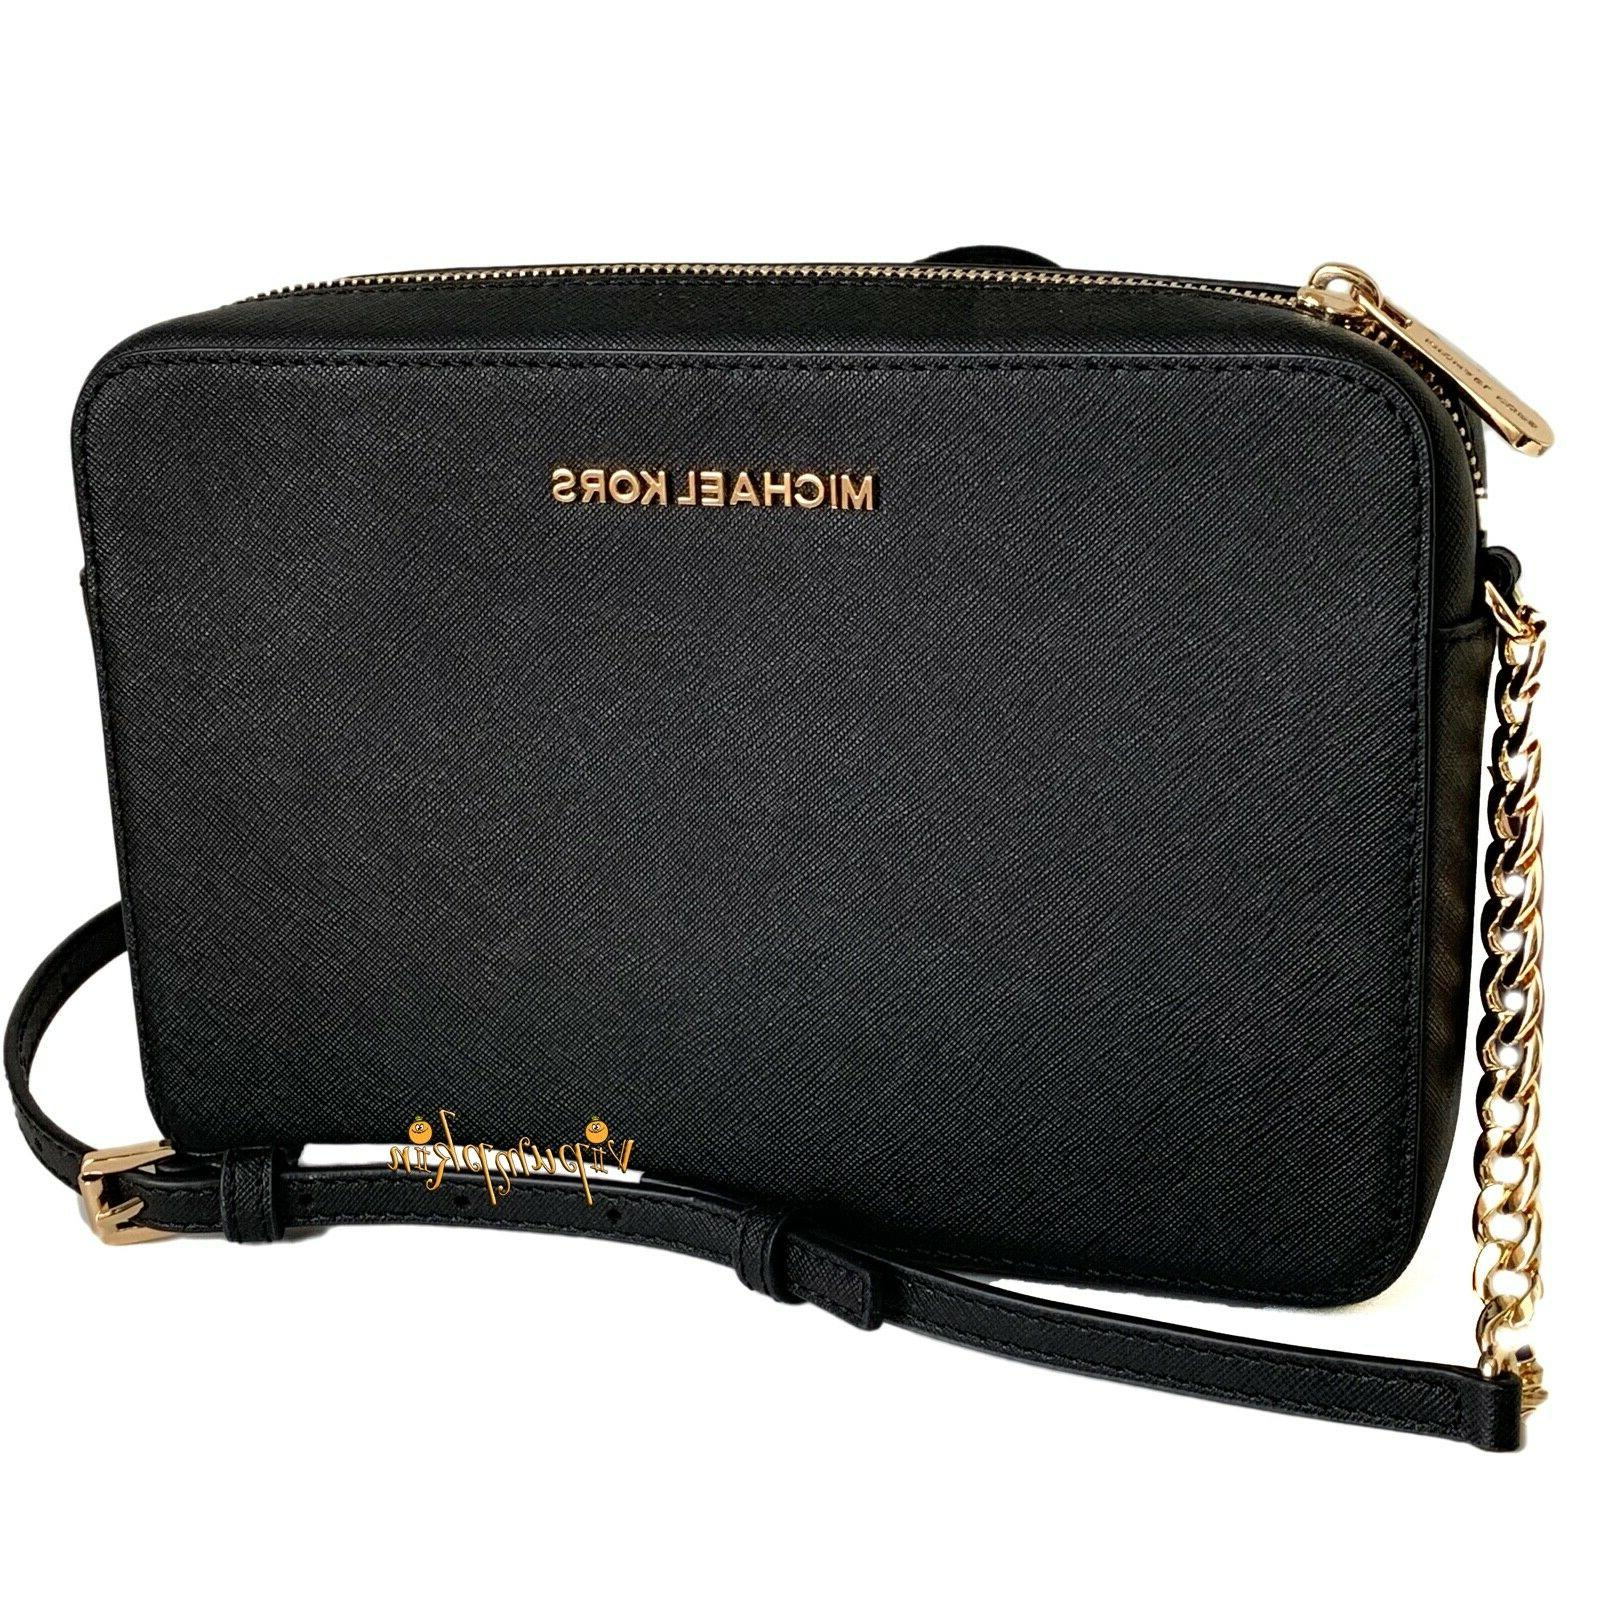 Michael Item Crossbody Bag Saffiano Leather Black or Set